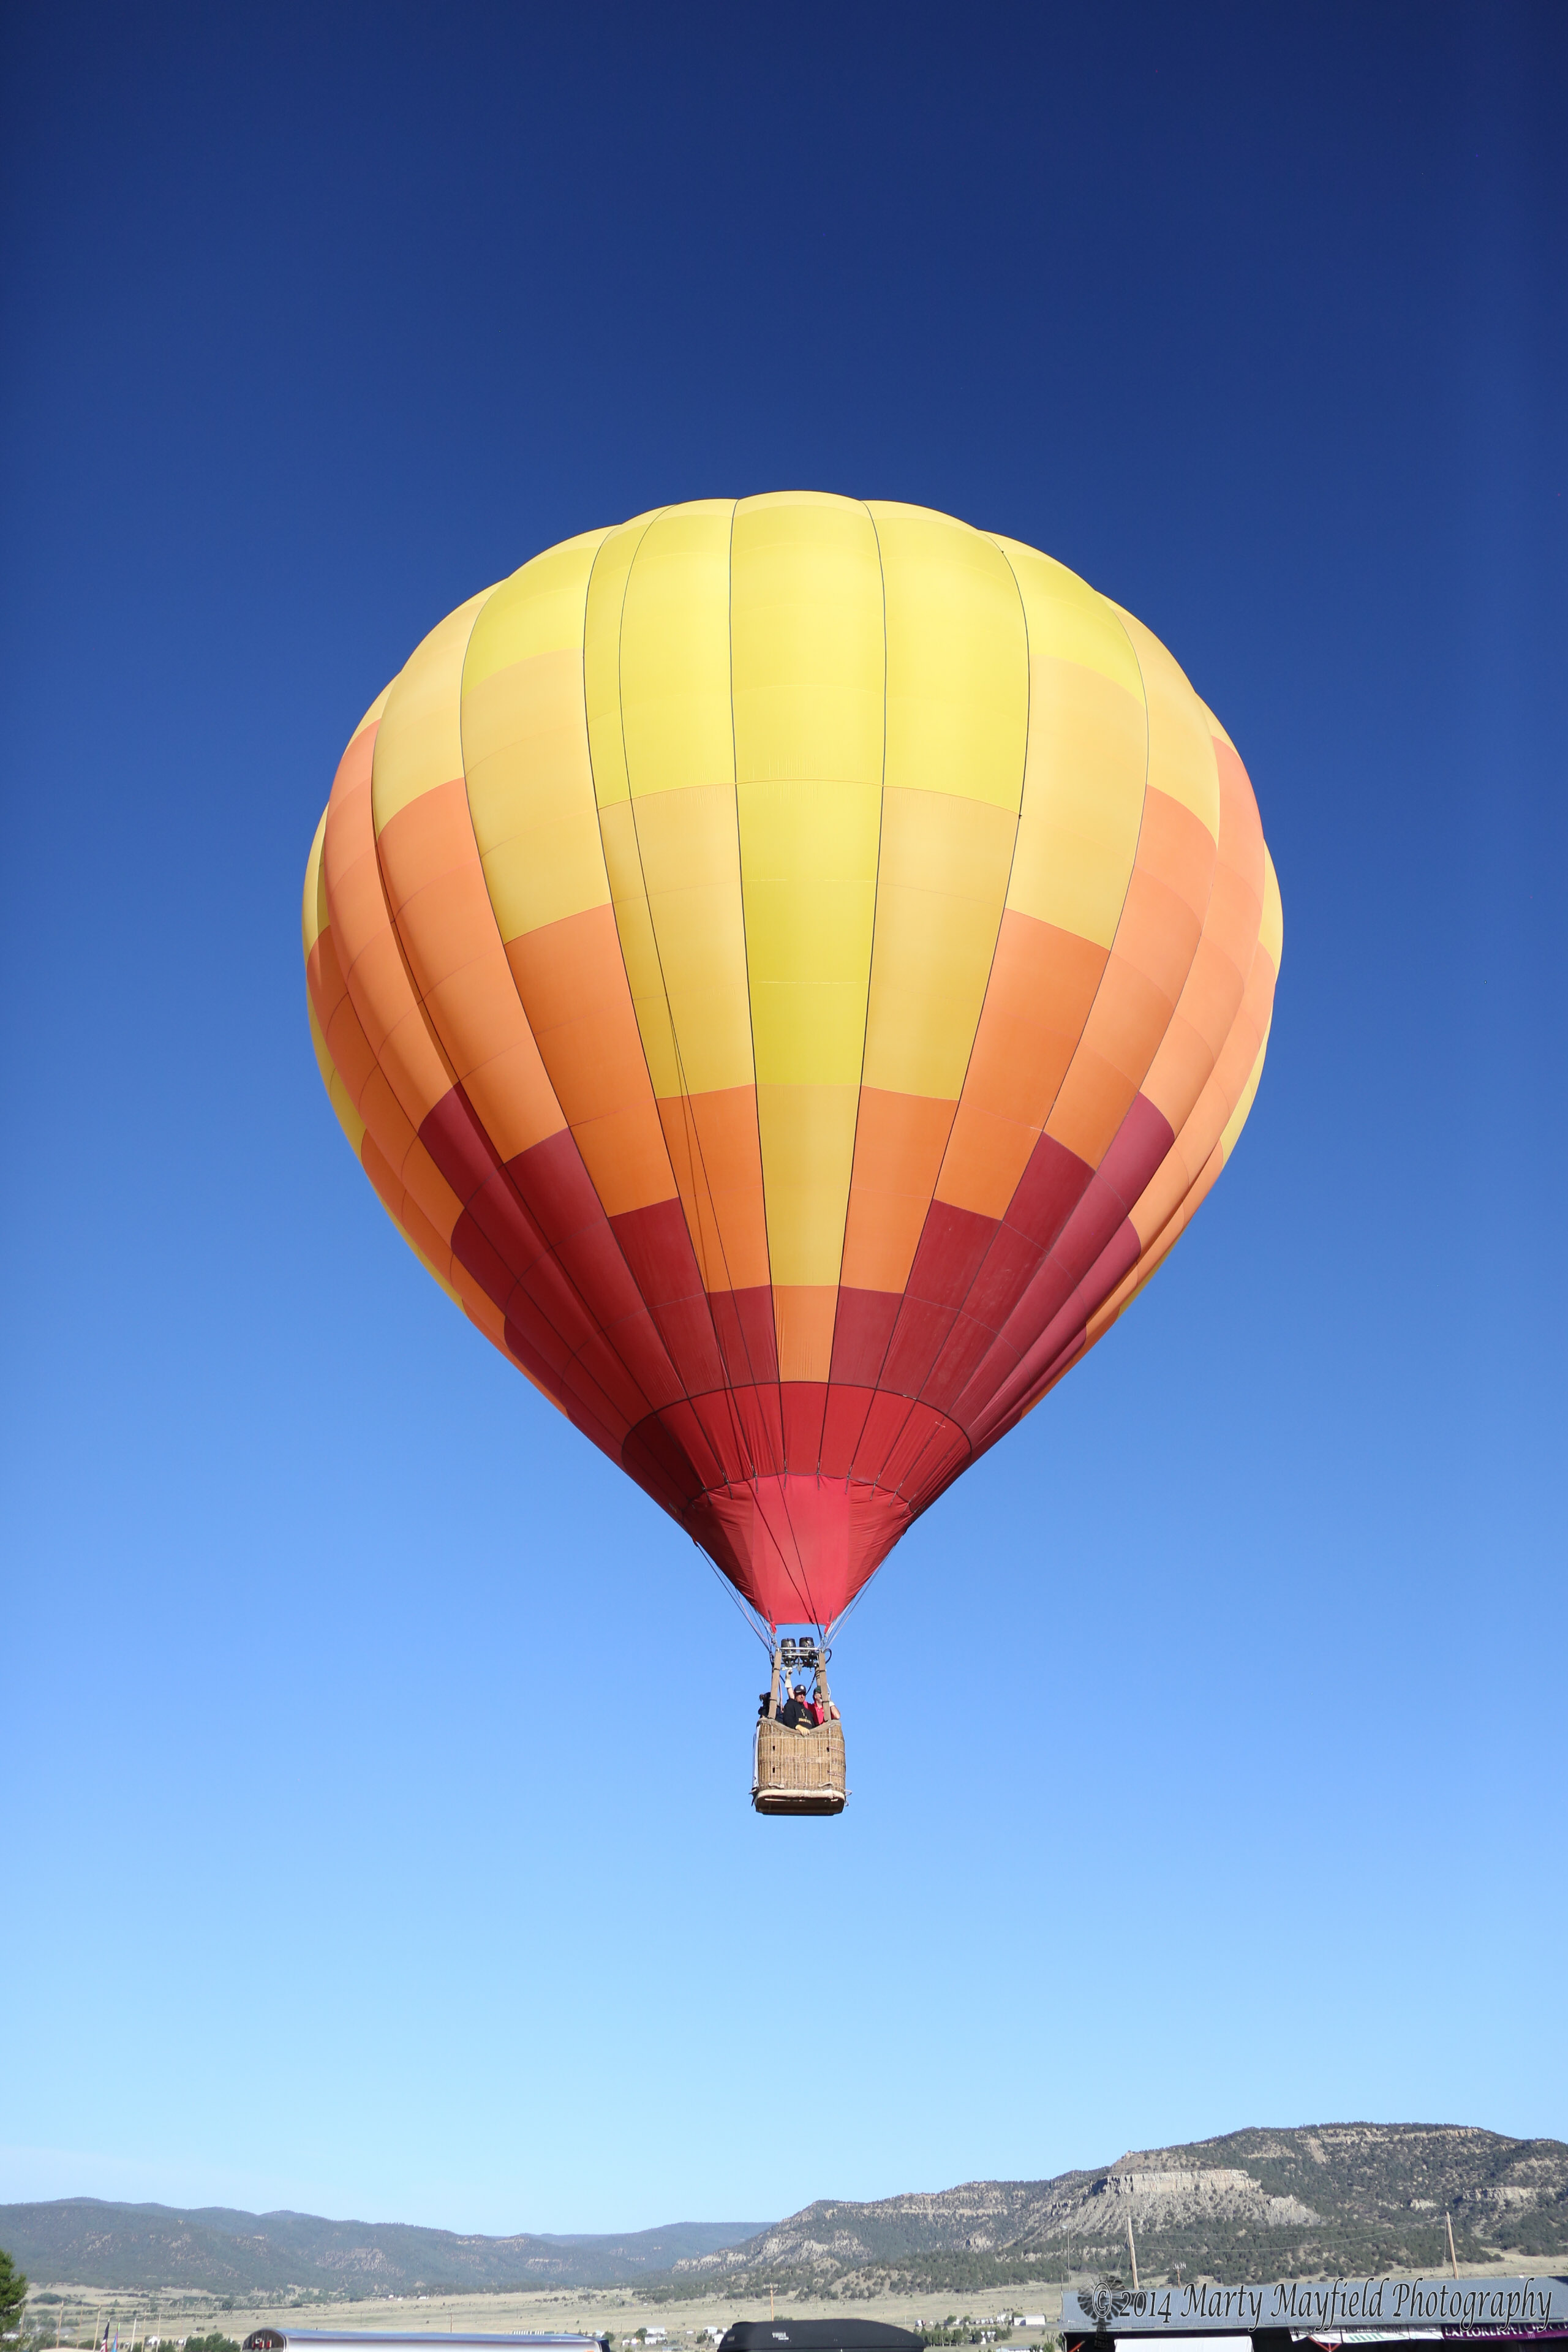 Up Up And Away As Balloons Soar Over Raton Krtn